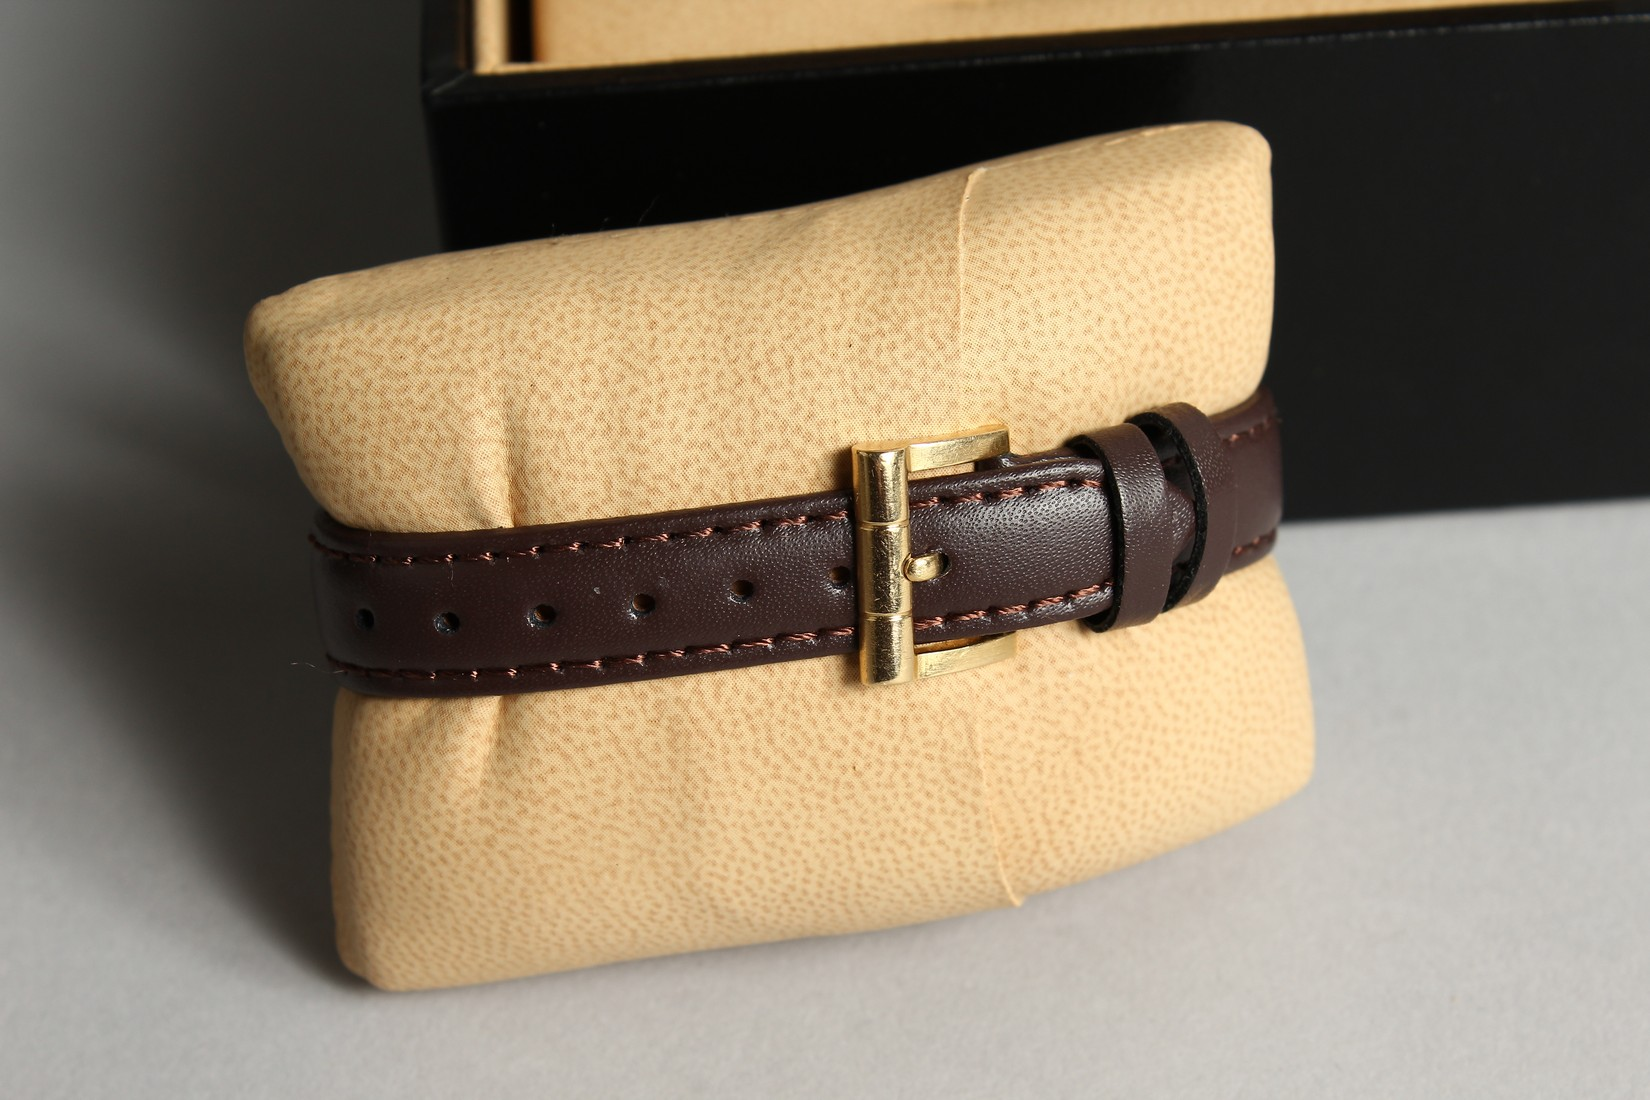 AN 18CT. GOLD BULGARI WRIST WATCH with leather strap, in original box. - Image 9 of 10